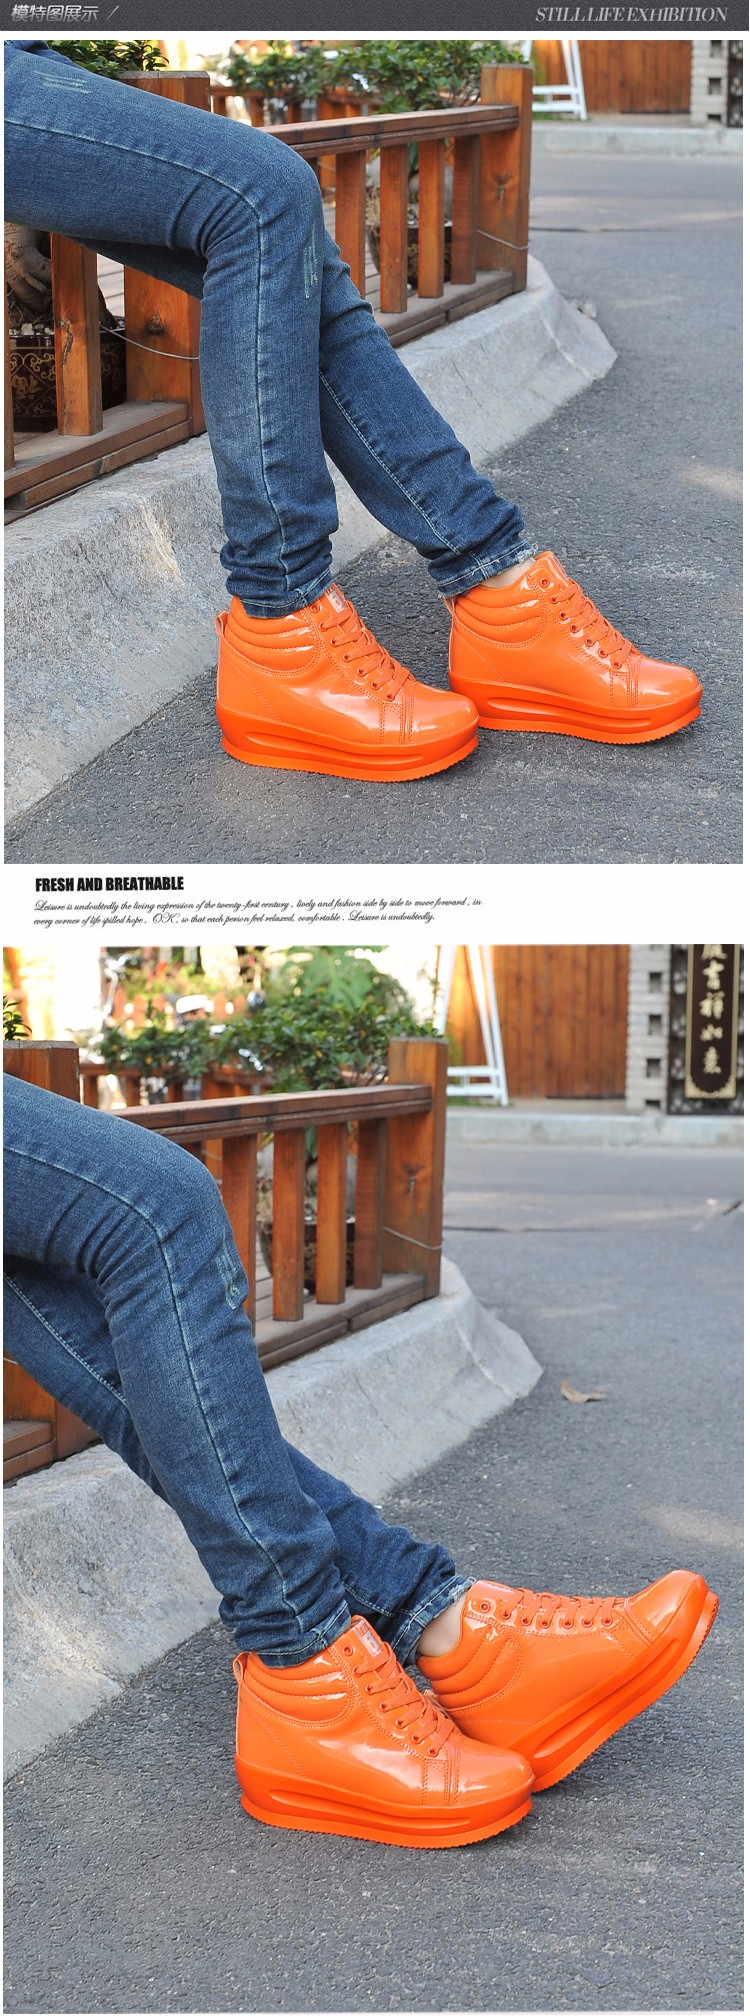 KUYUPP 2016 Fashion Hide Heel Women Casual Shoes Breathable Flat Platform Casual Women Shoes Patent Leather High Top Shoes YD105 (4)